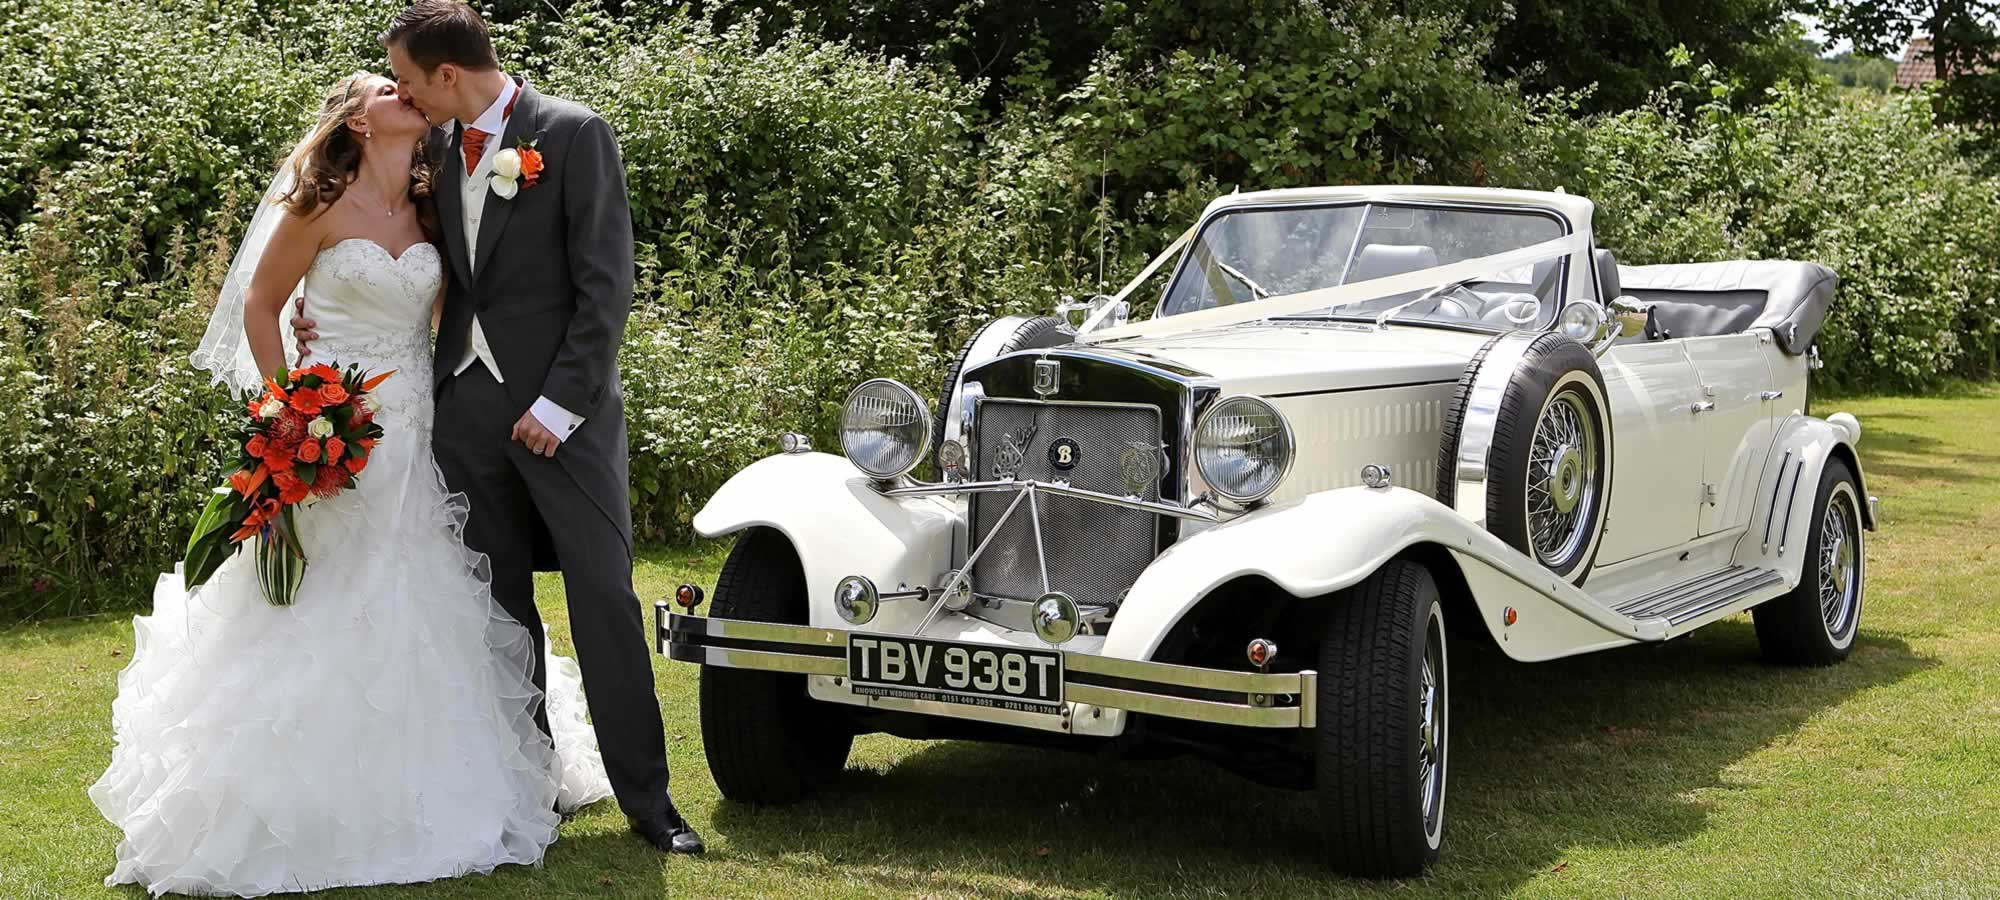 Classic Beauford Wedding Car Hire | Limousines in London